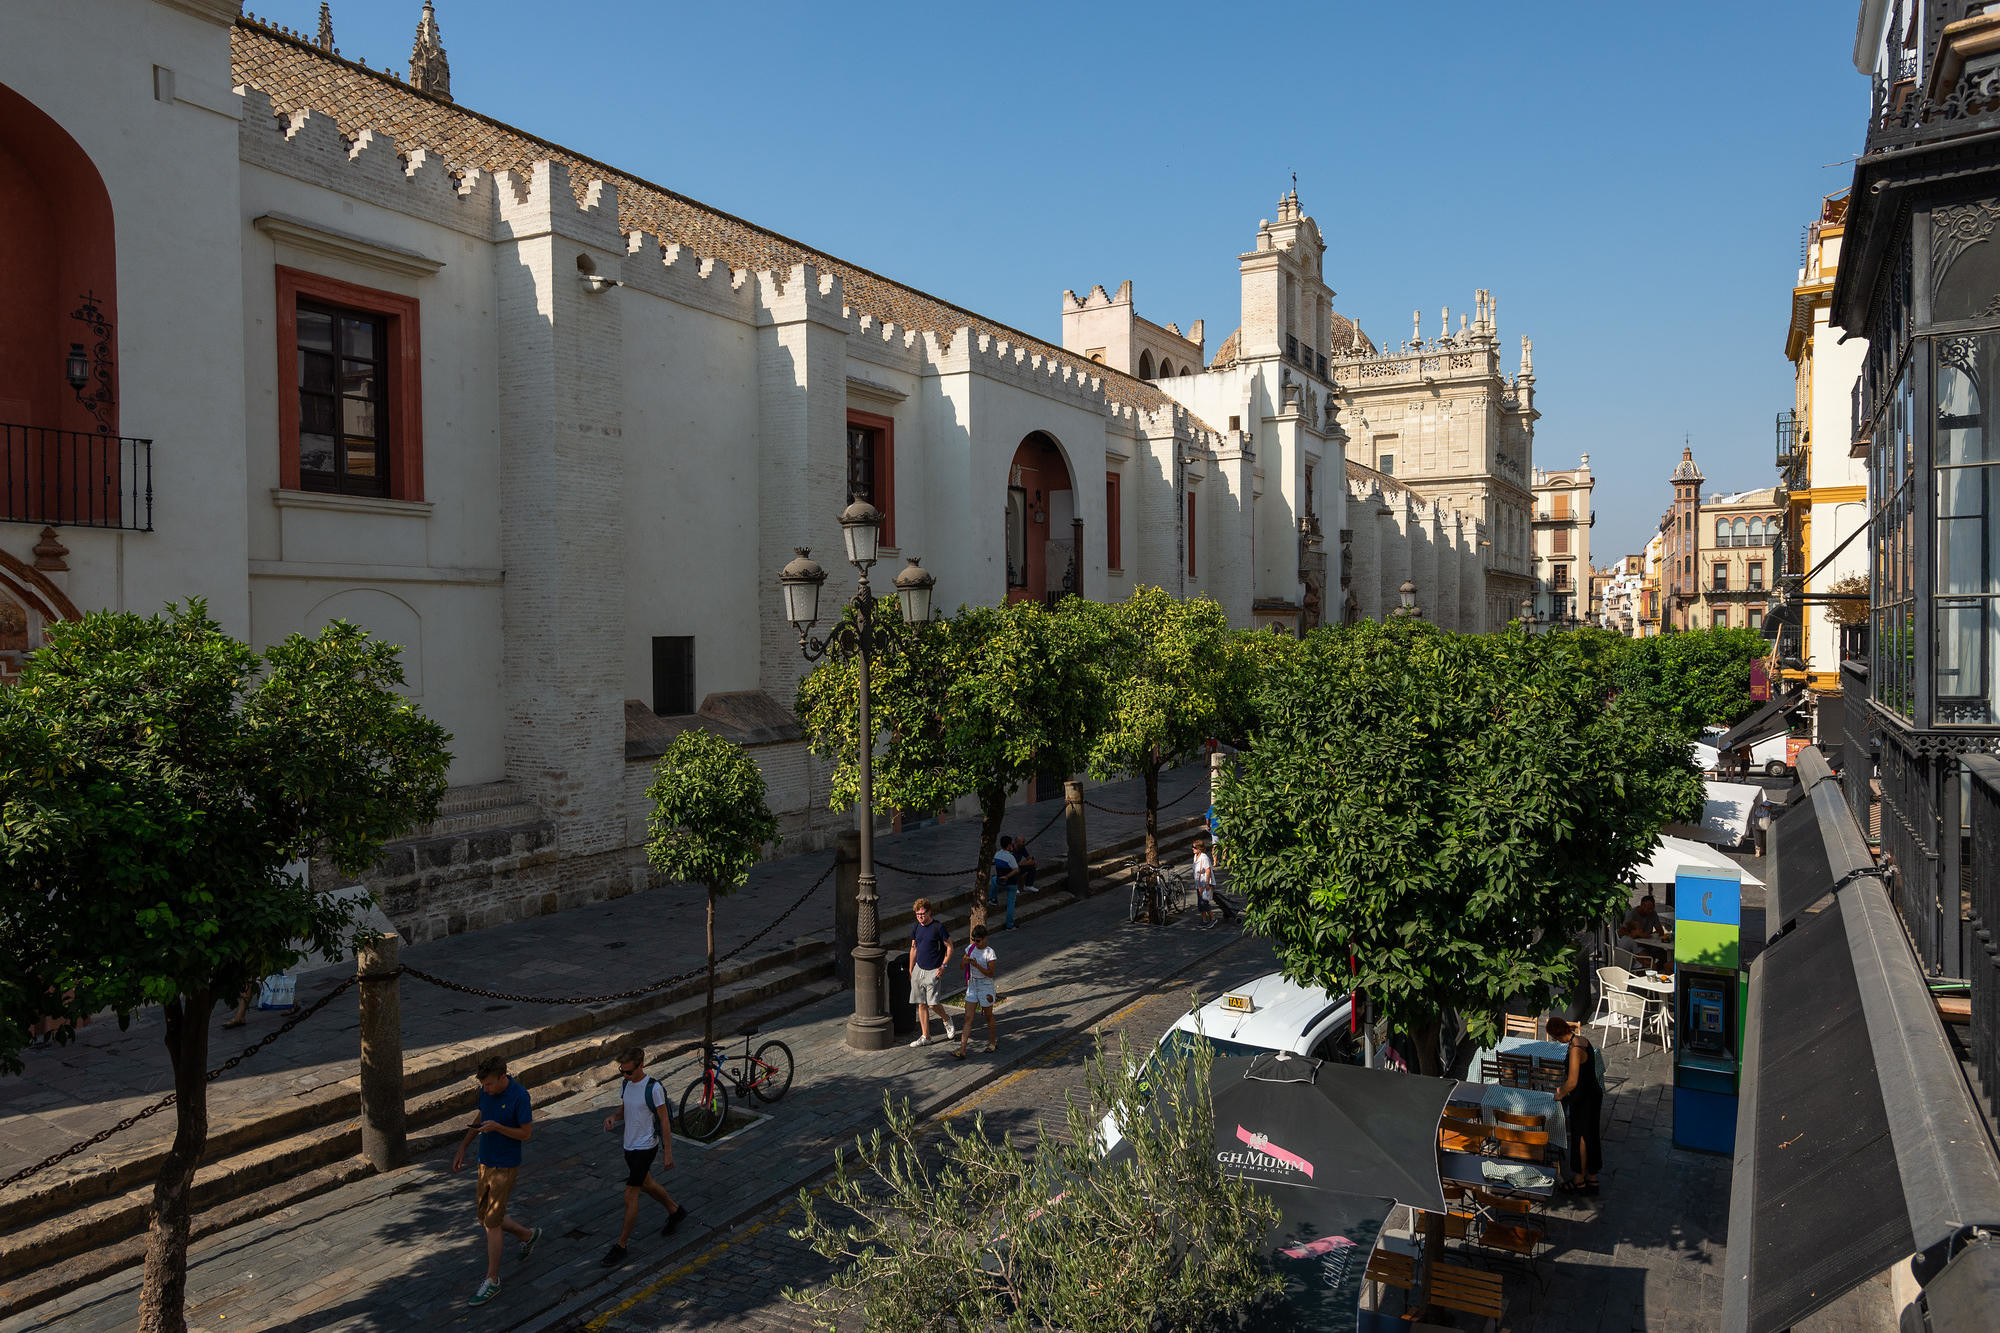 Street view from EME Catedral Hotel in Seville, Spain